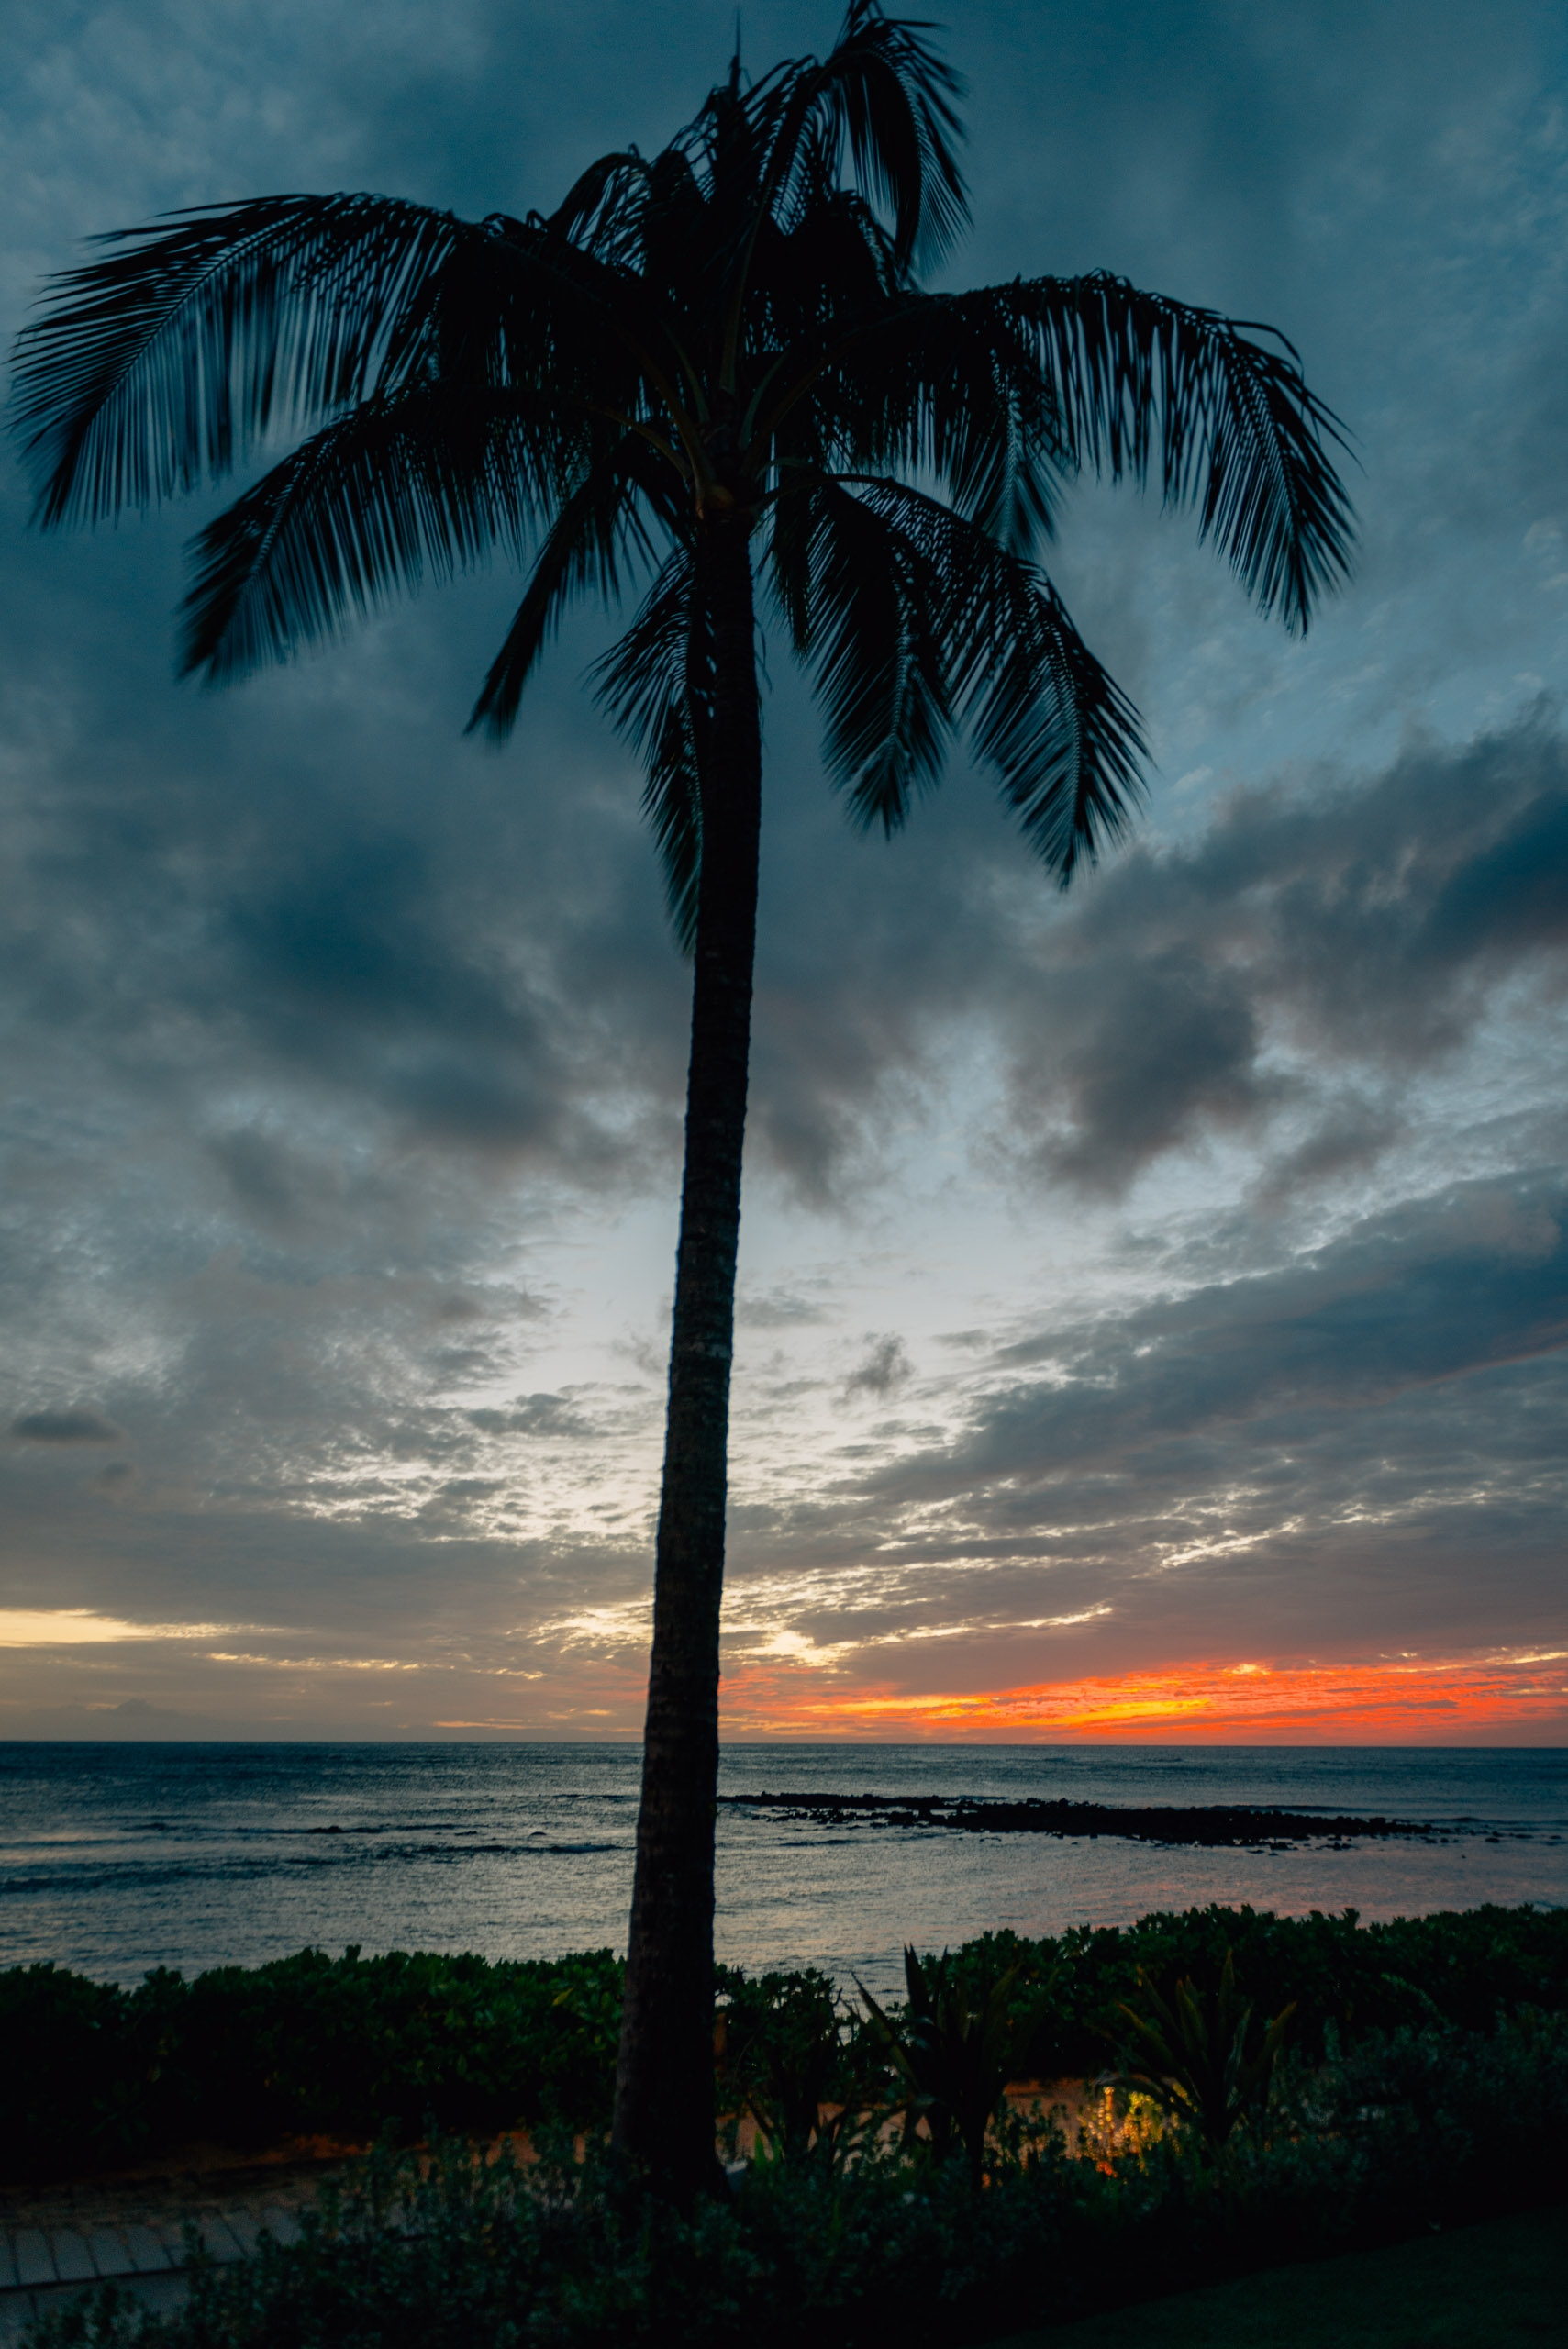 Palm Trees at Sunset 2